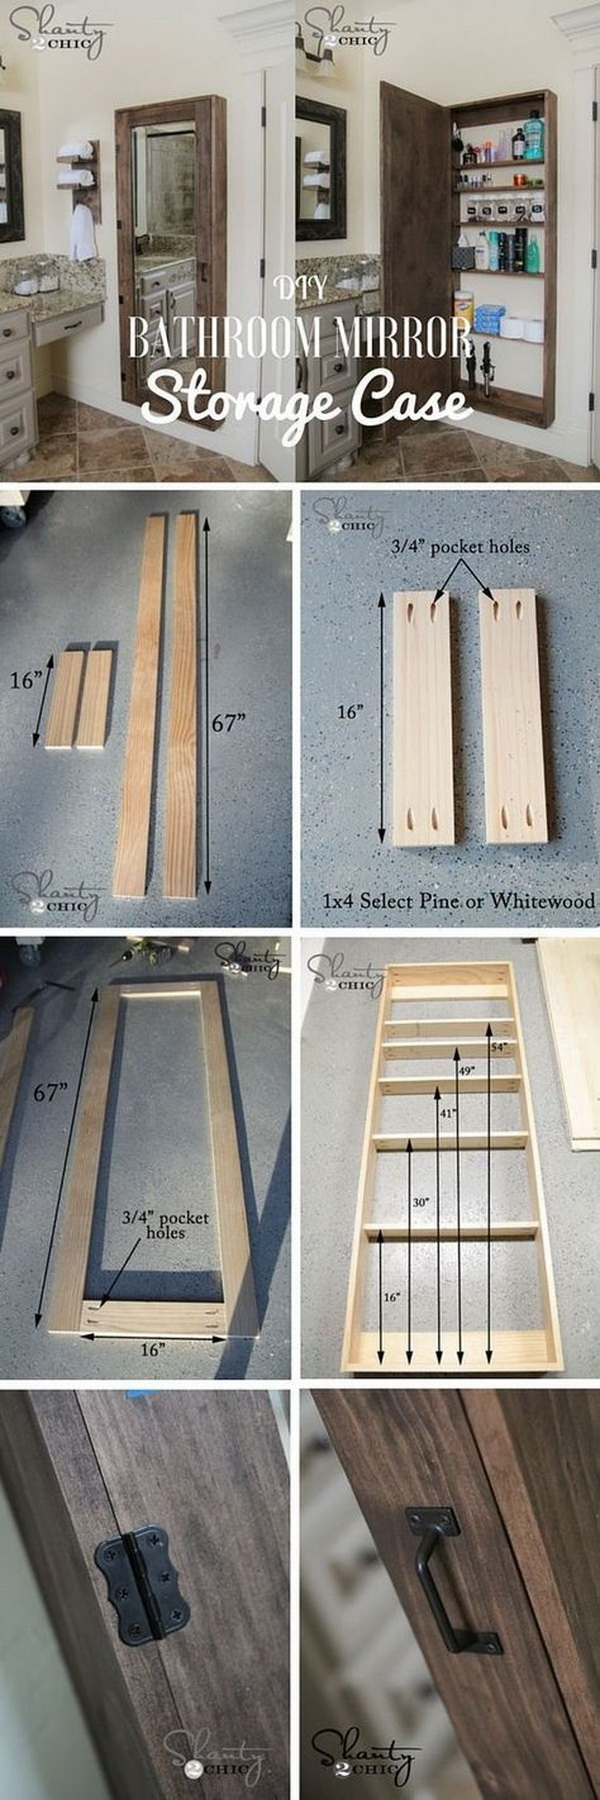 DIY Bathroom Mirror Storage Case. What a creative and genius DIY project to add extra storage to small bathrooms! Both practical and decorative with rustic farmhouse stlyle!